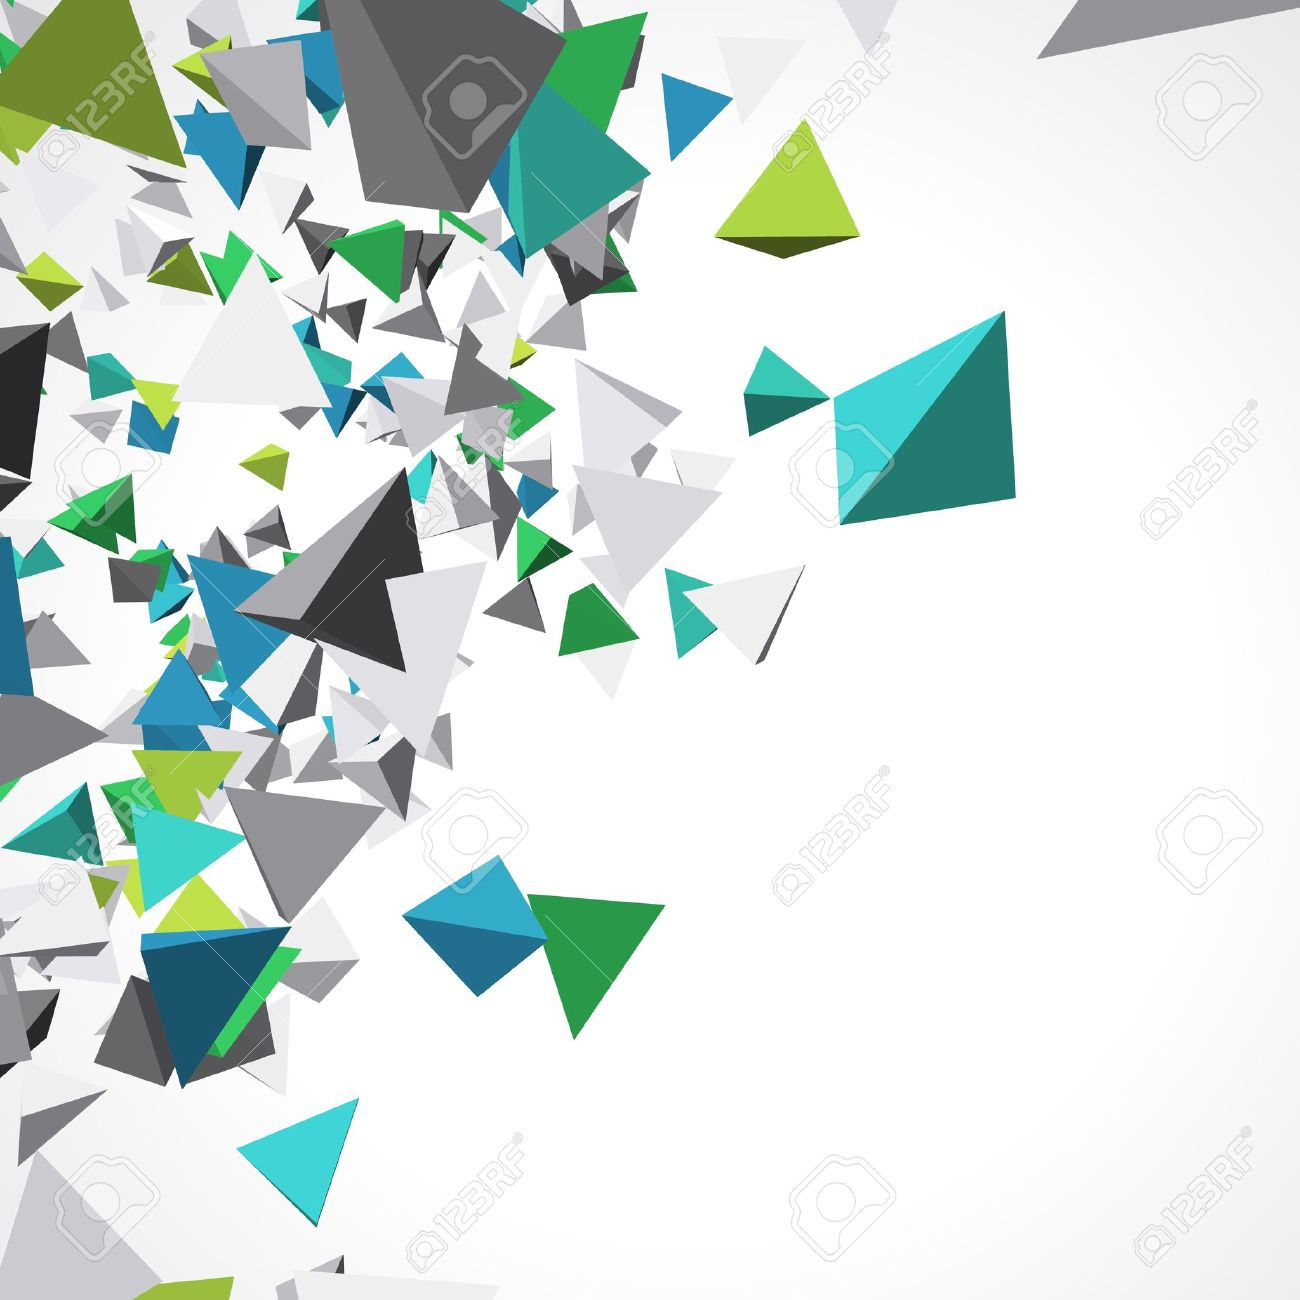 Pics photos 3d colorful abstract background design - Fly Colorful 3d Pyramids Background Stock Vector 10964734